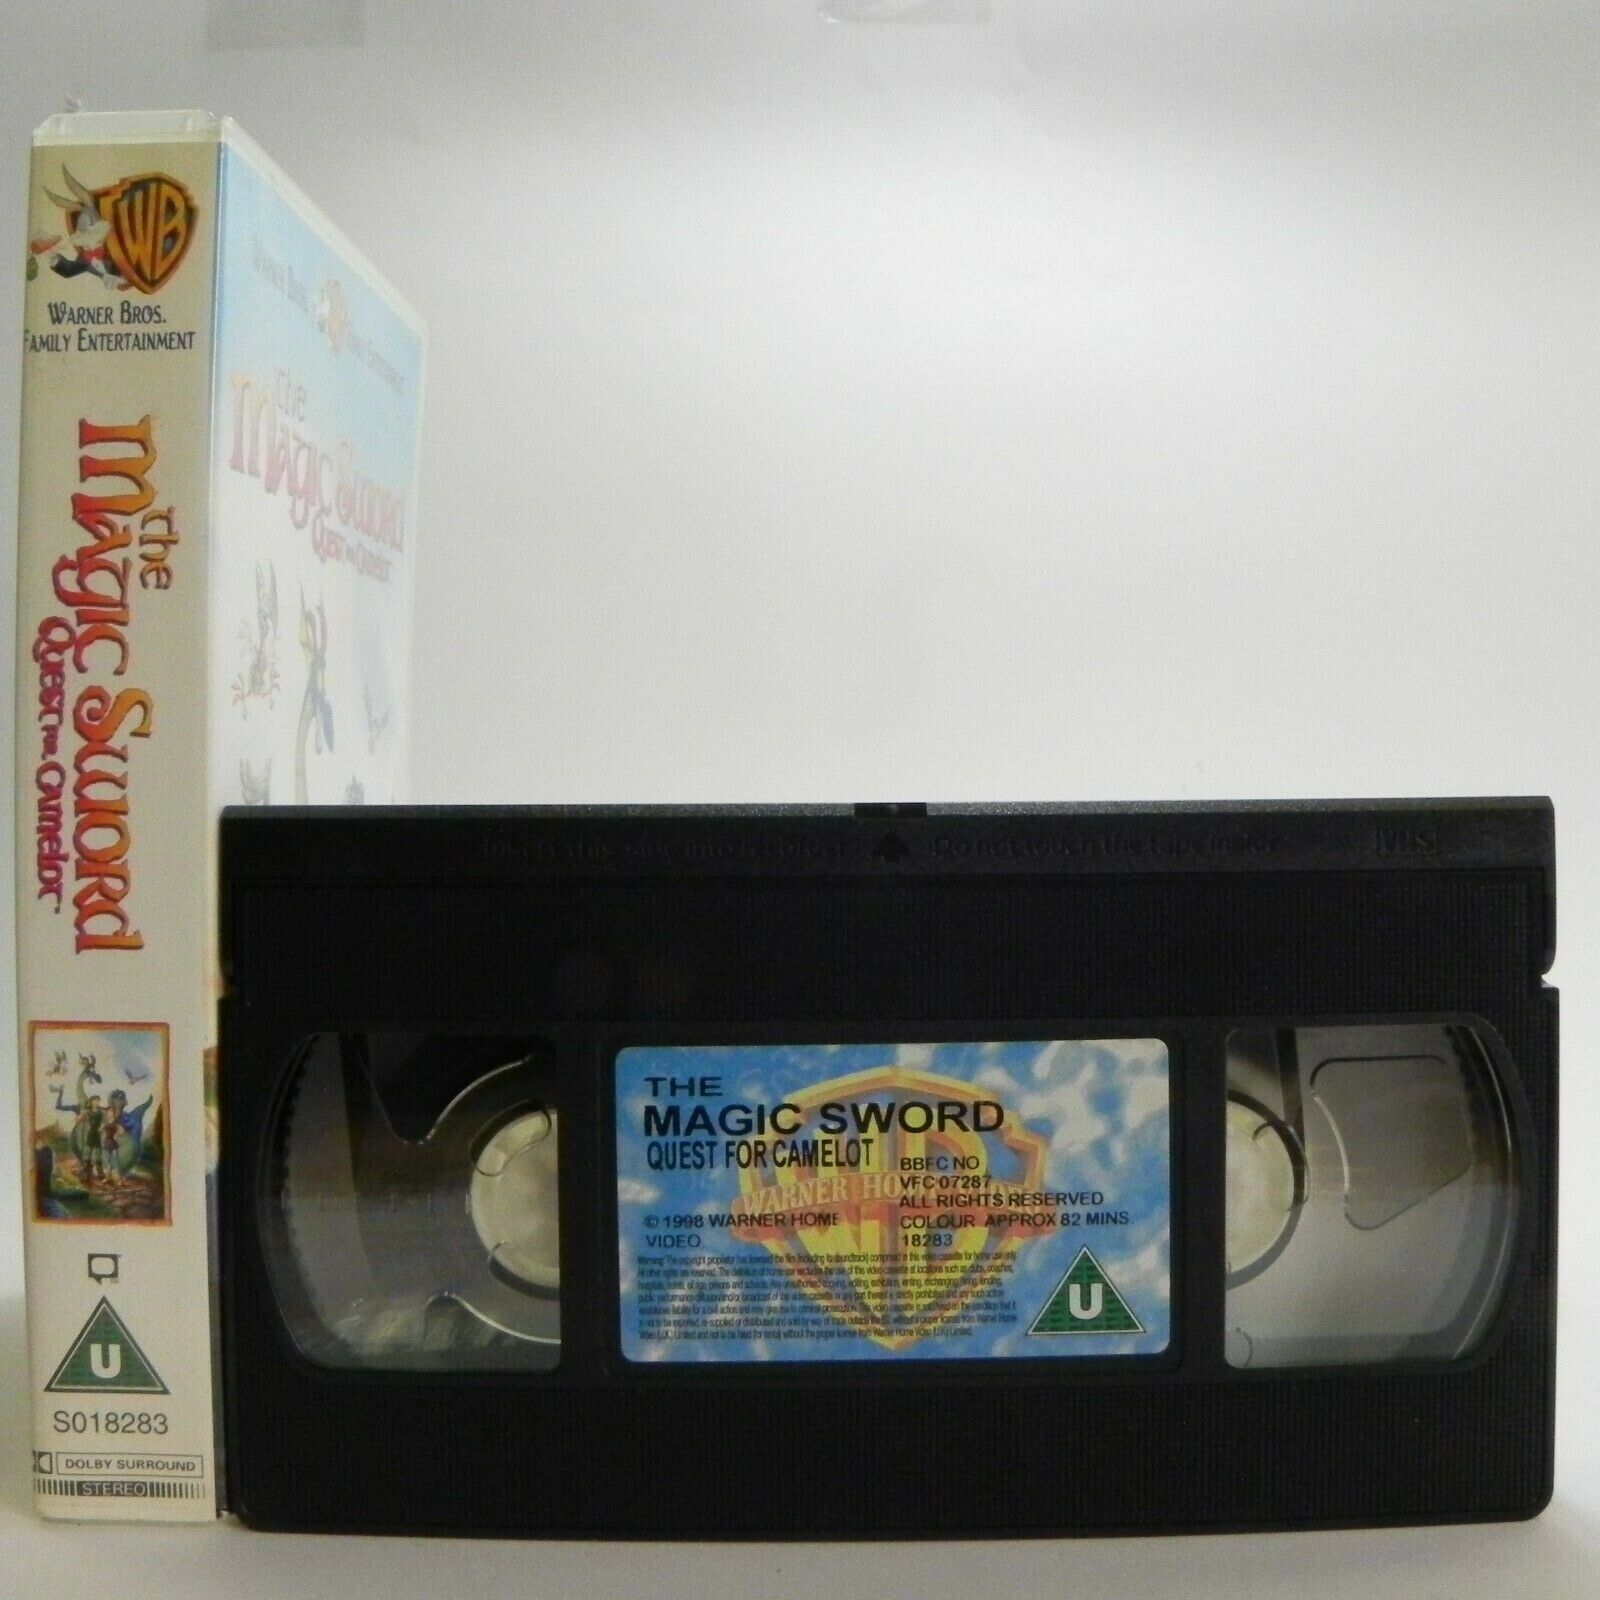 The Magic Sword: Quest For Camelot - Warner Family - Animated - Adventure - VHS